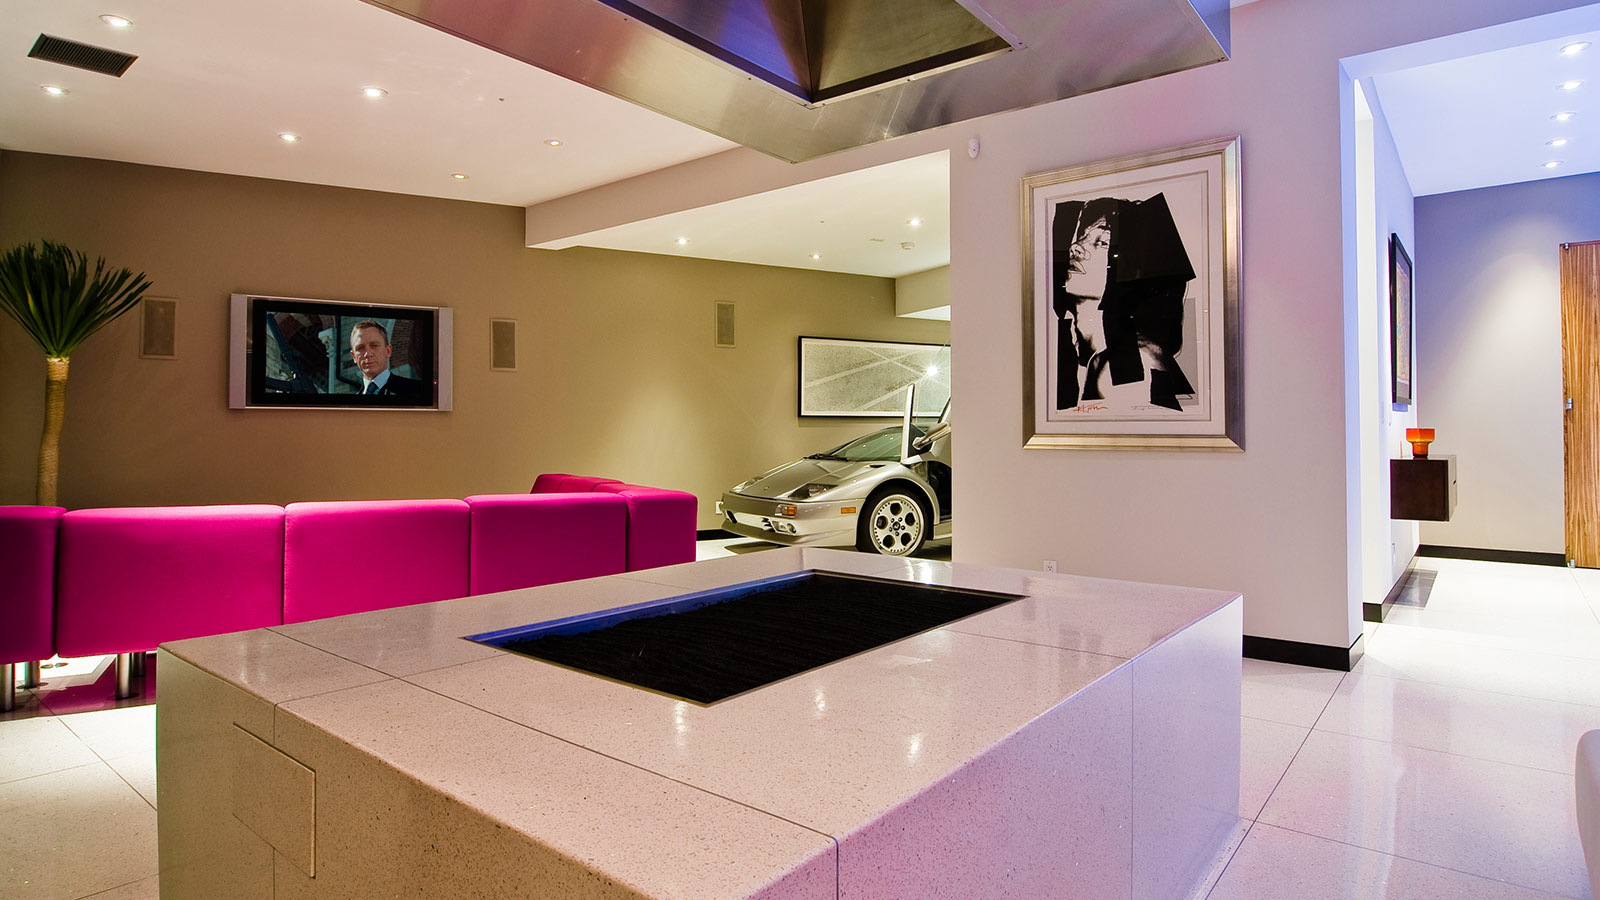 Bachelor Apartment Design Modern Hollywood Hills Bachelor Pad With Indoor Car Park